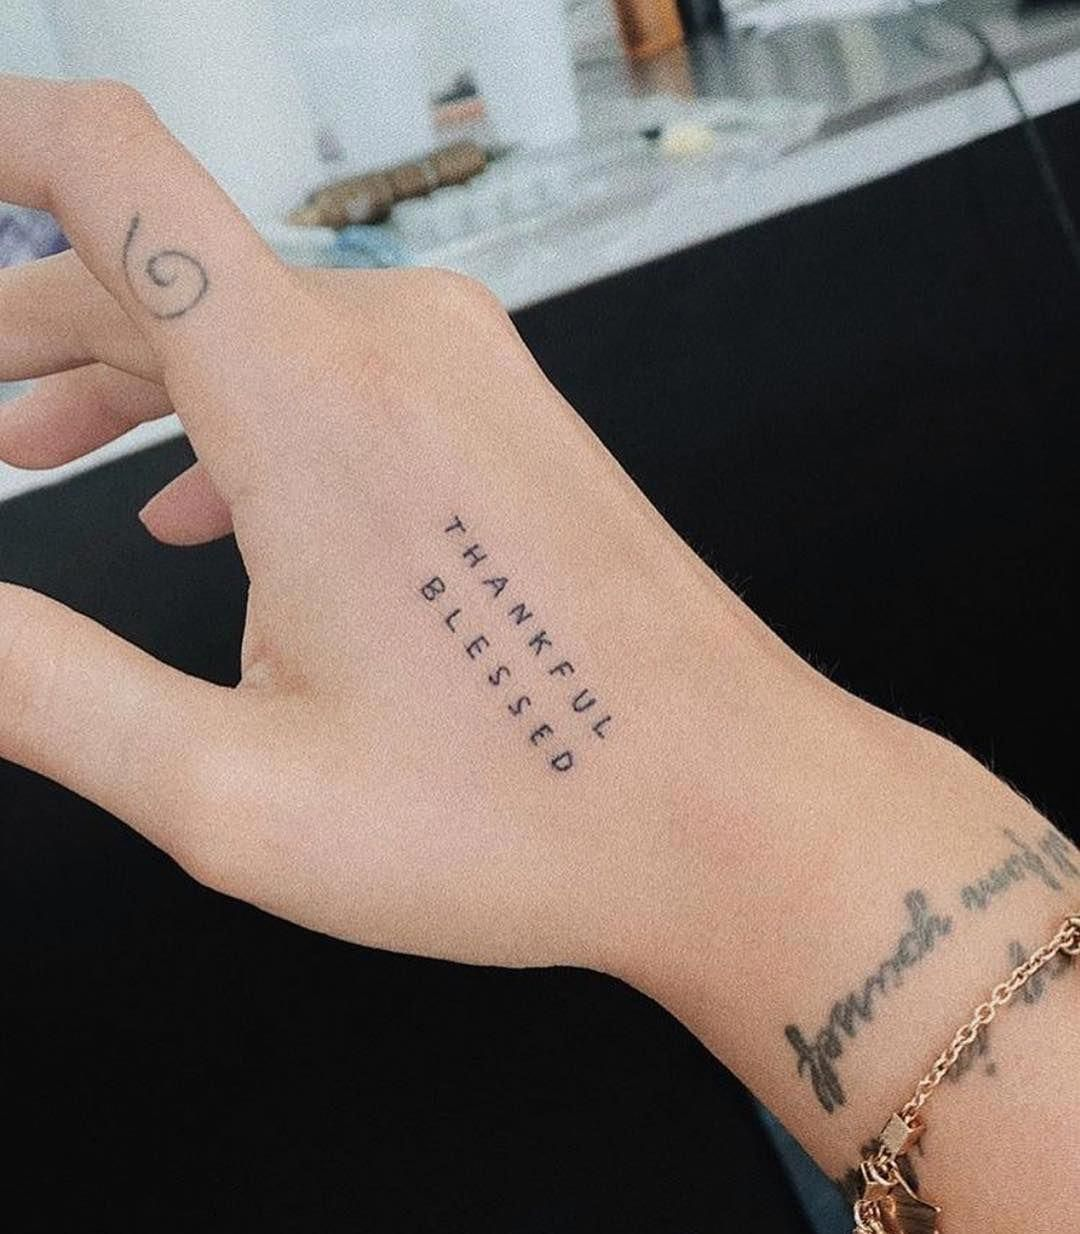 f7666f7eb Cute Tattoos for Girls 2019- Lovely Designs with Meaning tattoos,tattoos  for women,tattoos for guys,tattoos for women small,tattoos for women half  sleeve ...